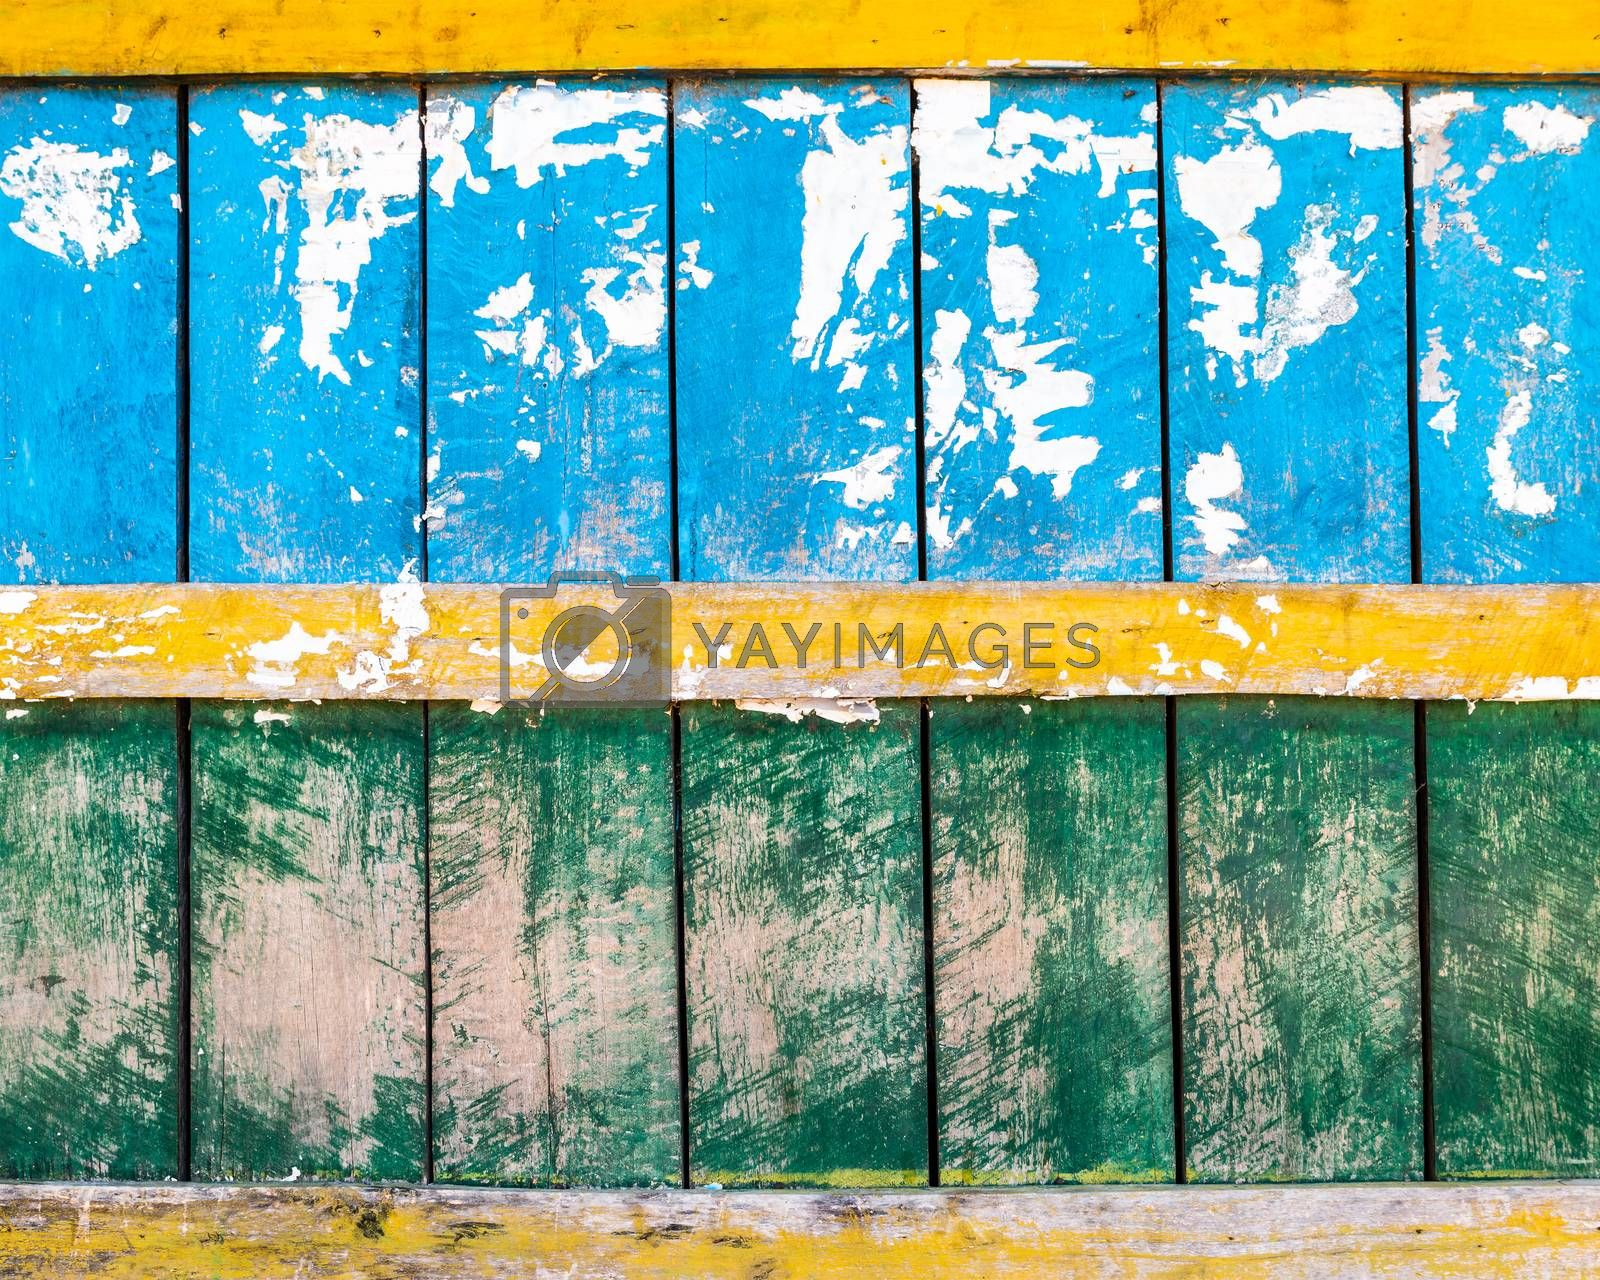 Grungy blue, green and yellow wood wall texture, torn paper in the top half